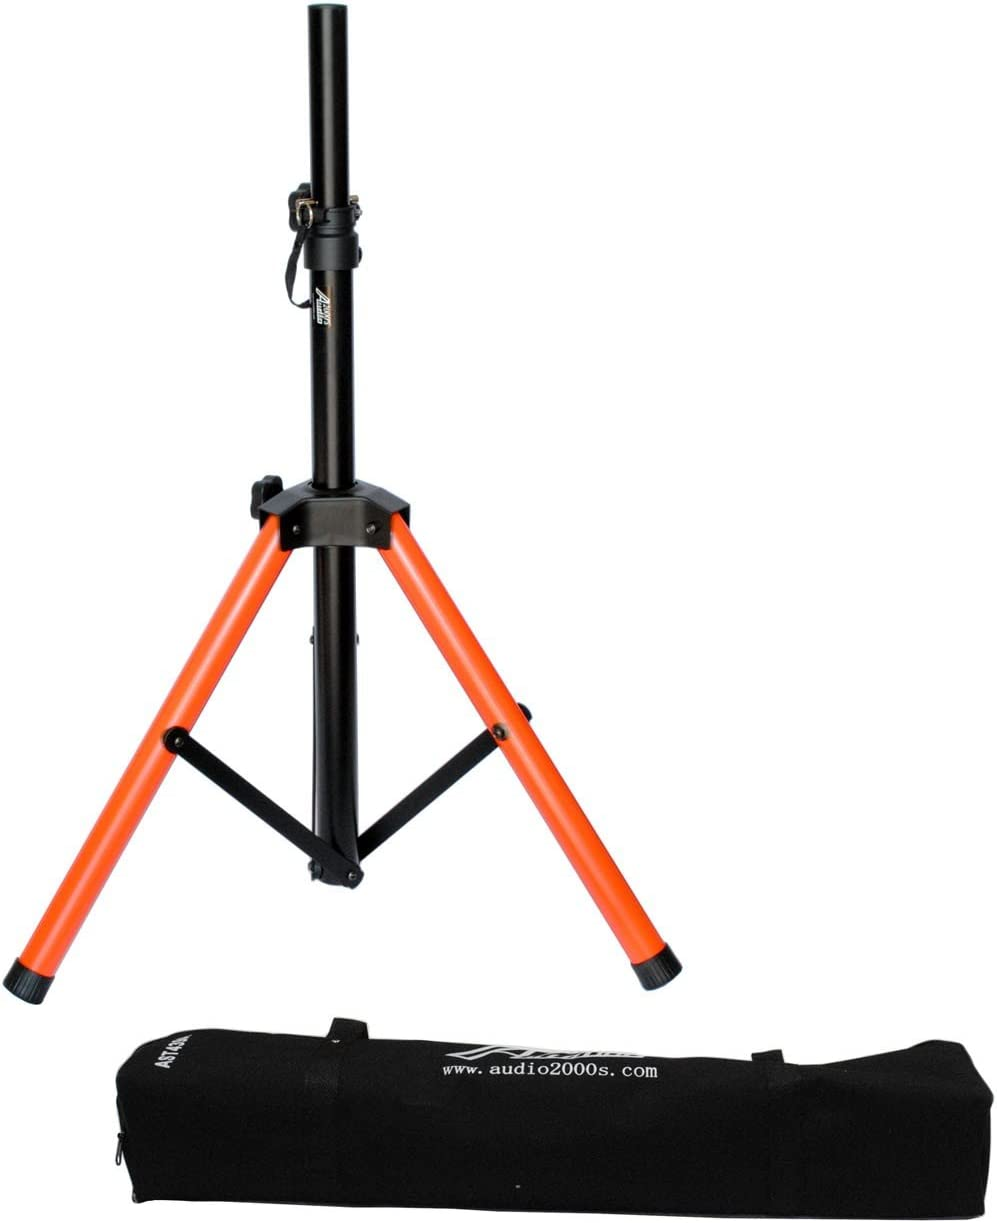 Audio 2000s Short Heavy Duty Speaker Stand with Canvas Carrying Bag AST4398